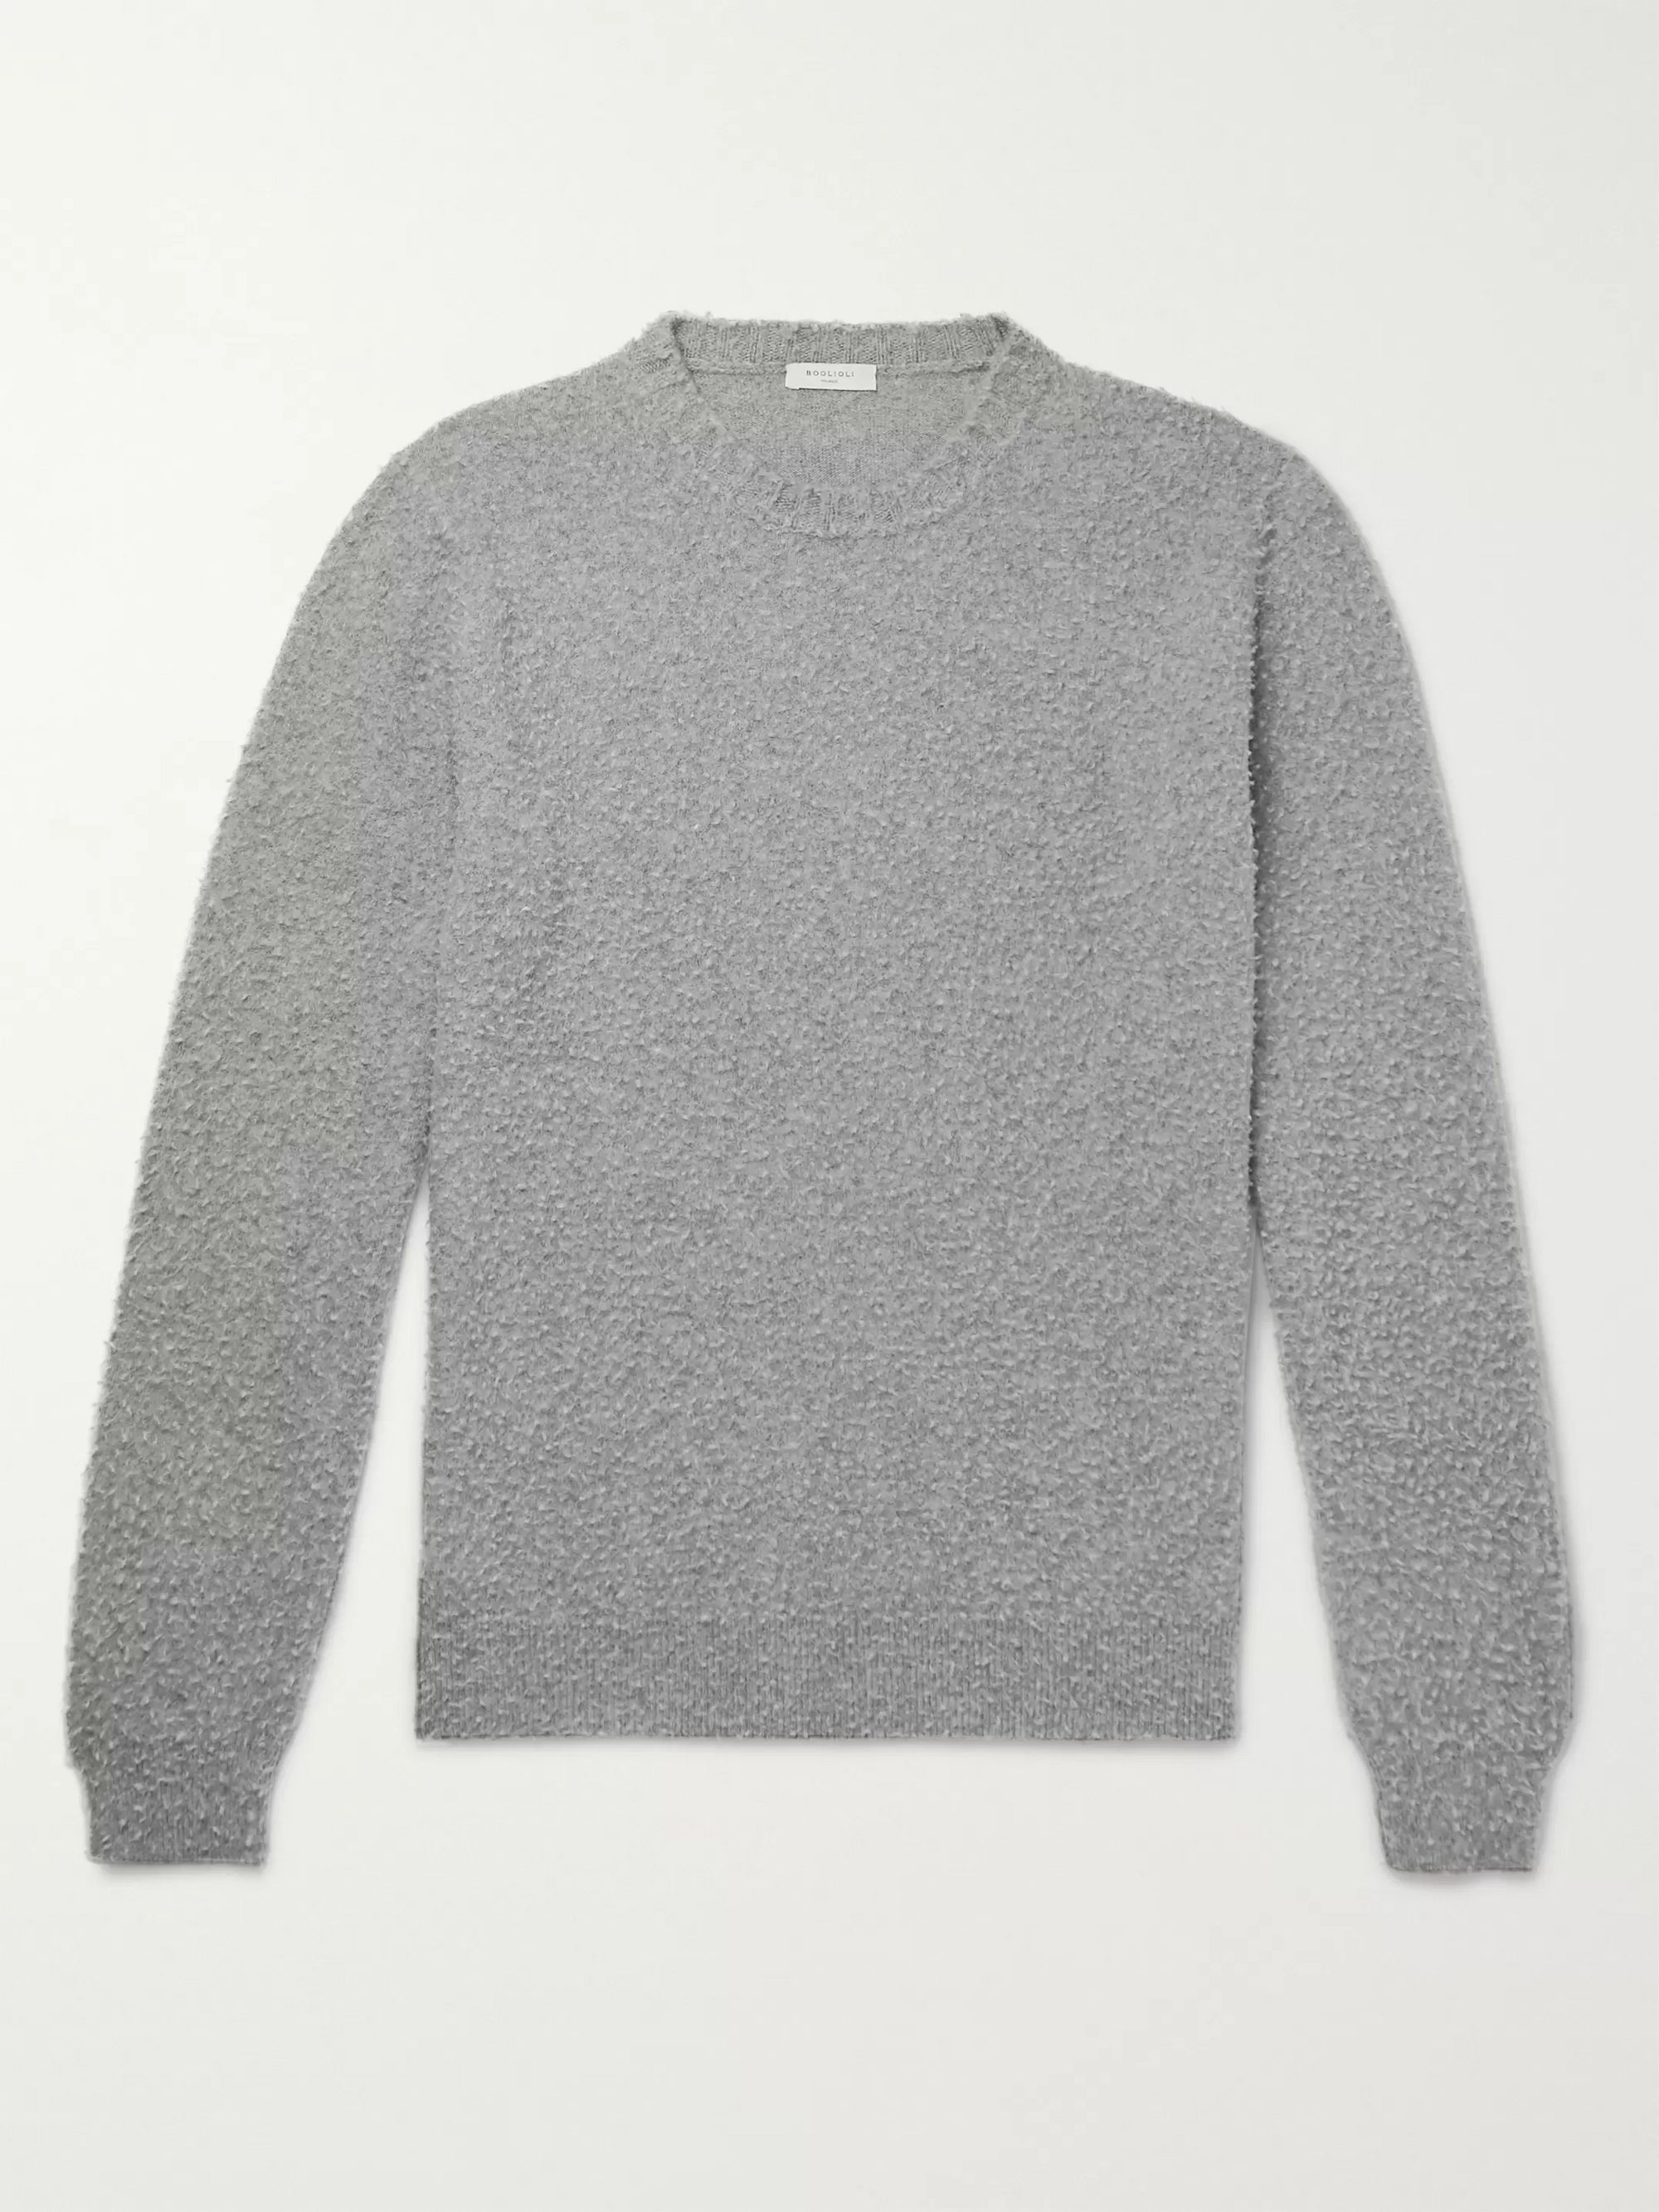 Boglioli Textured Virgin Wool and Cashmere-Blend Sweater